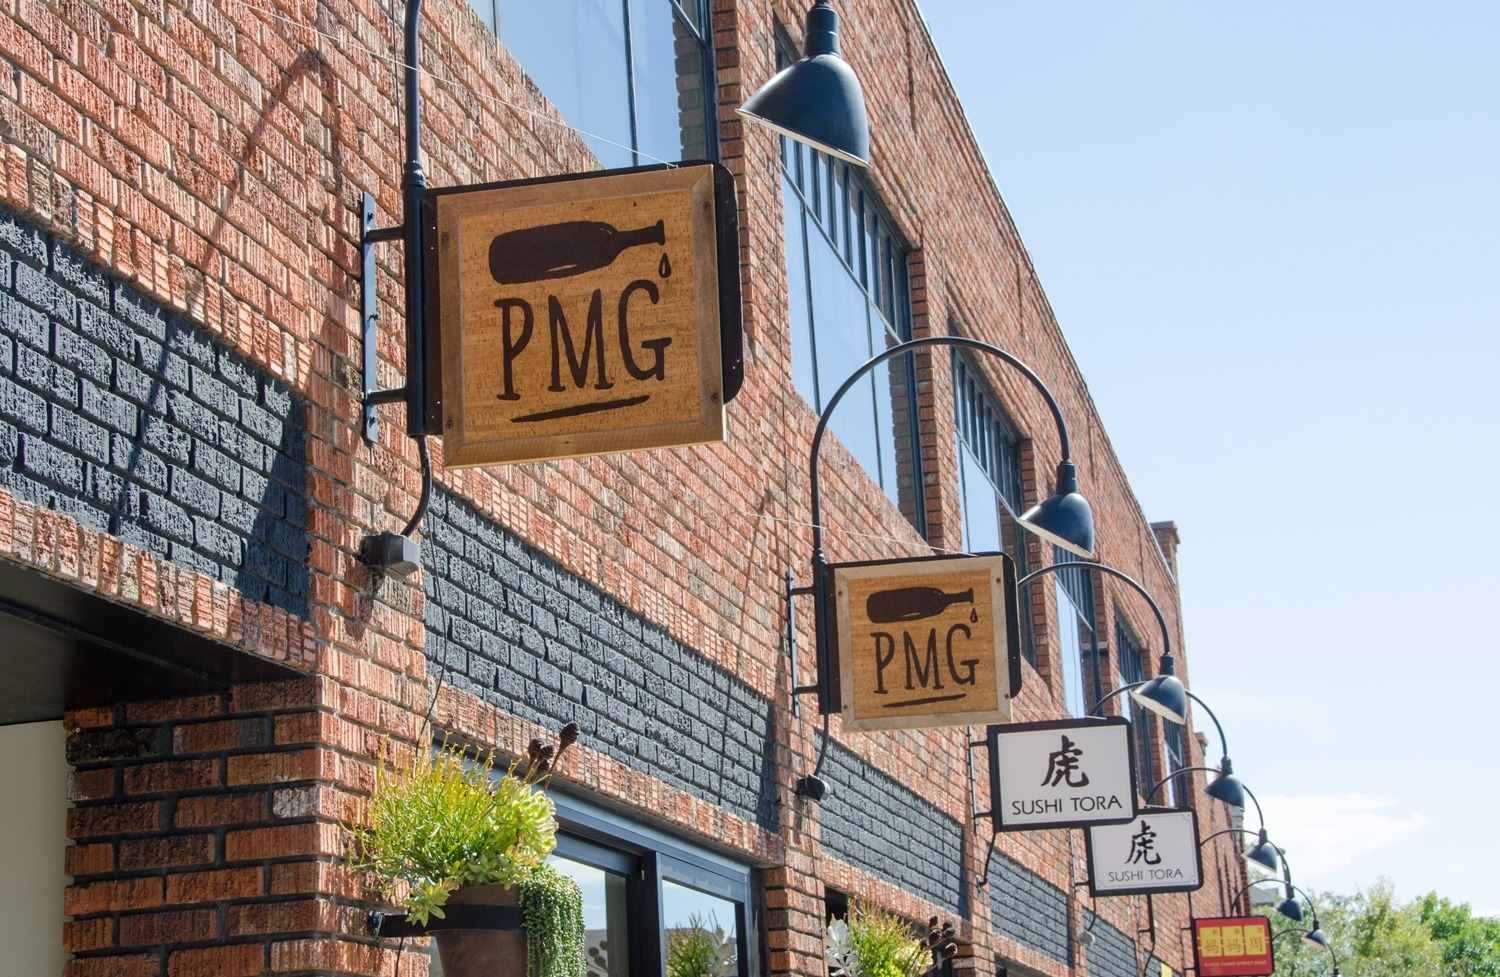 PMG wine bar on Pearl Street, Boulder